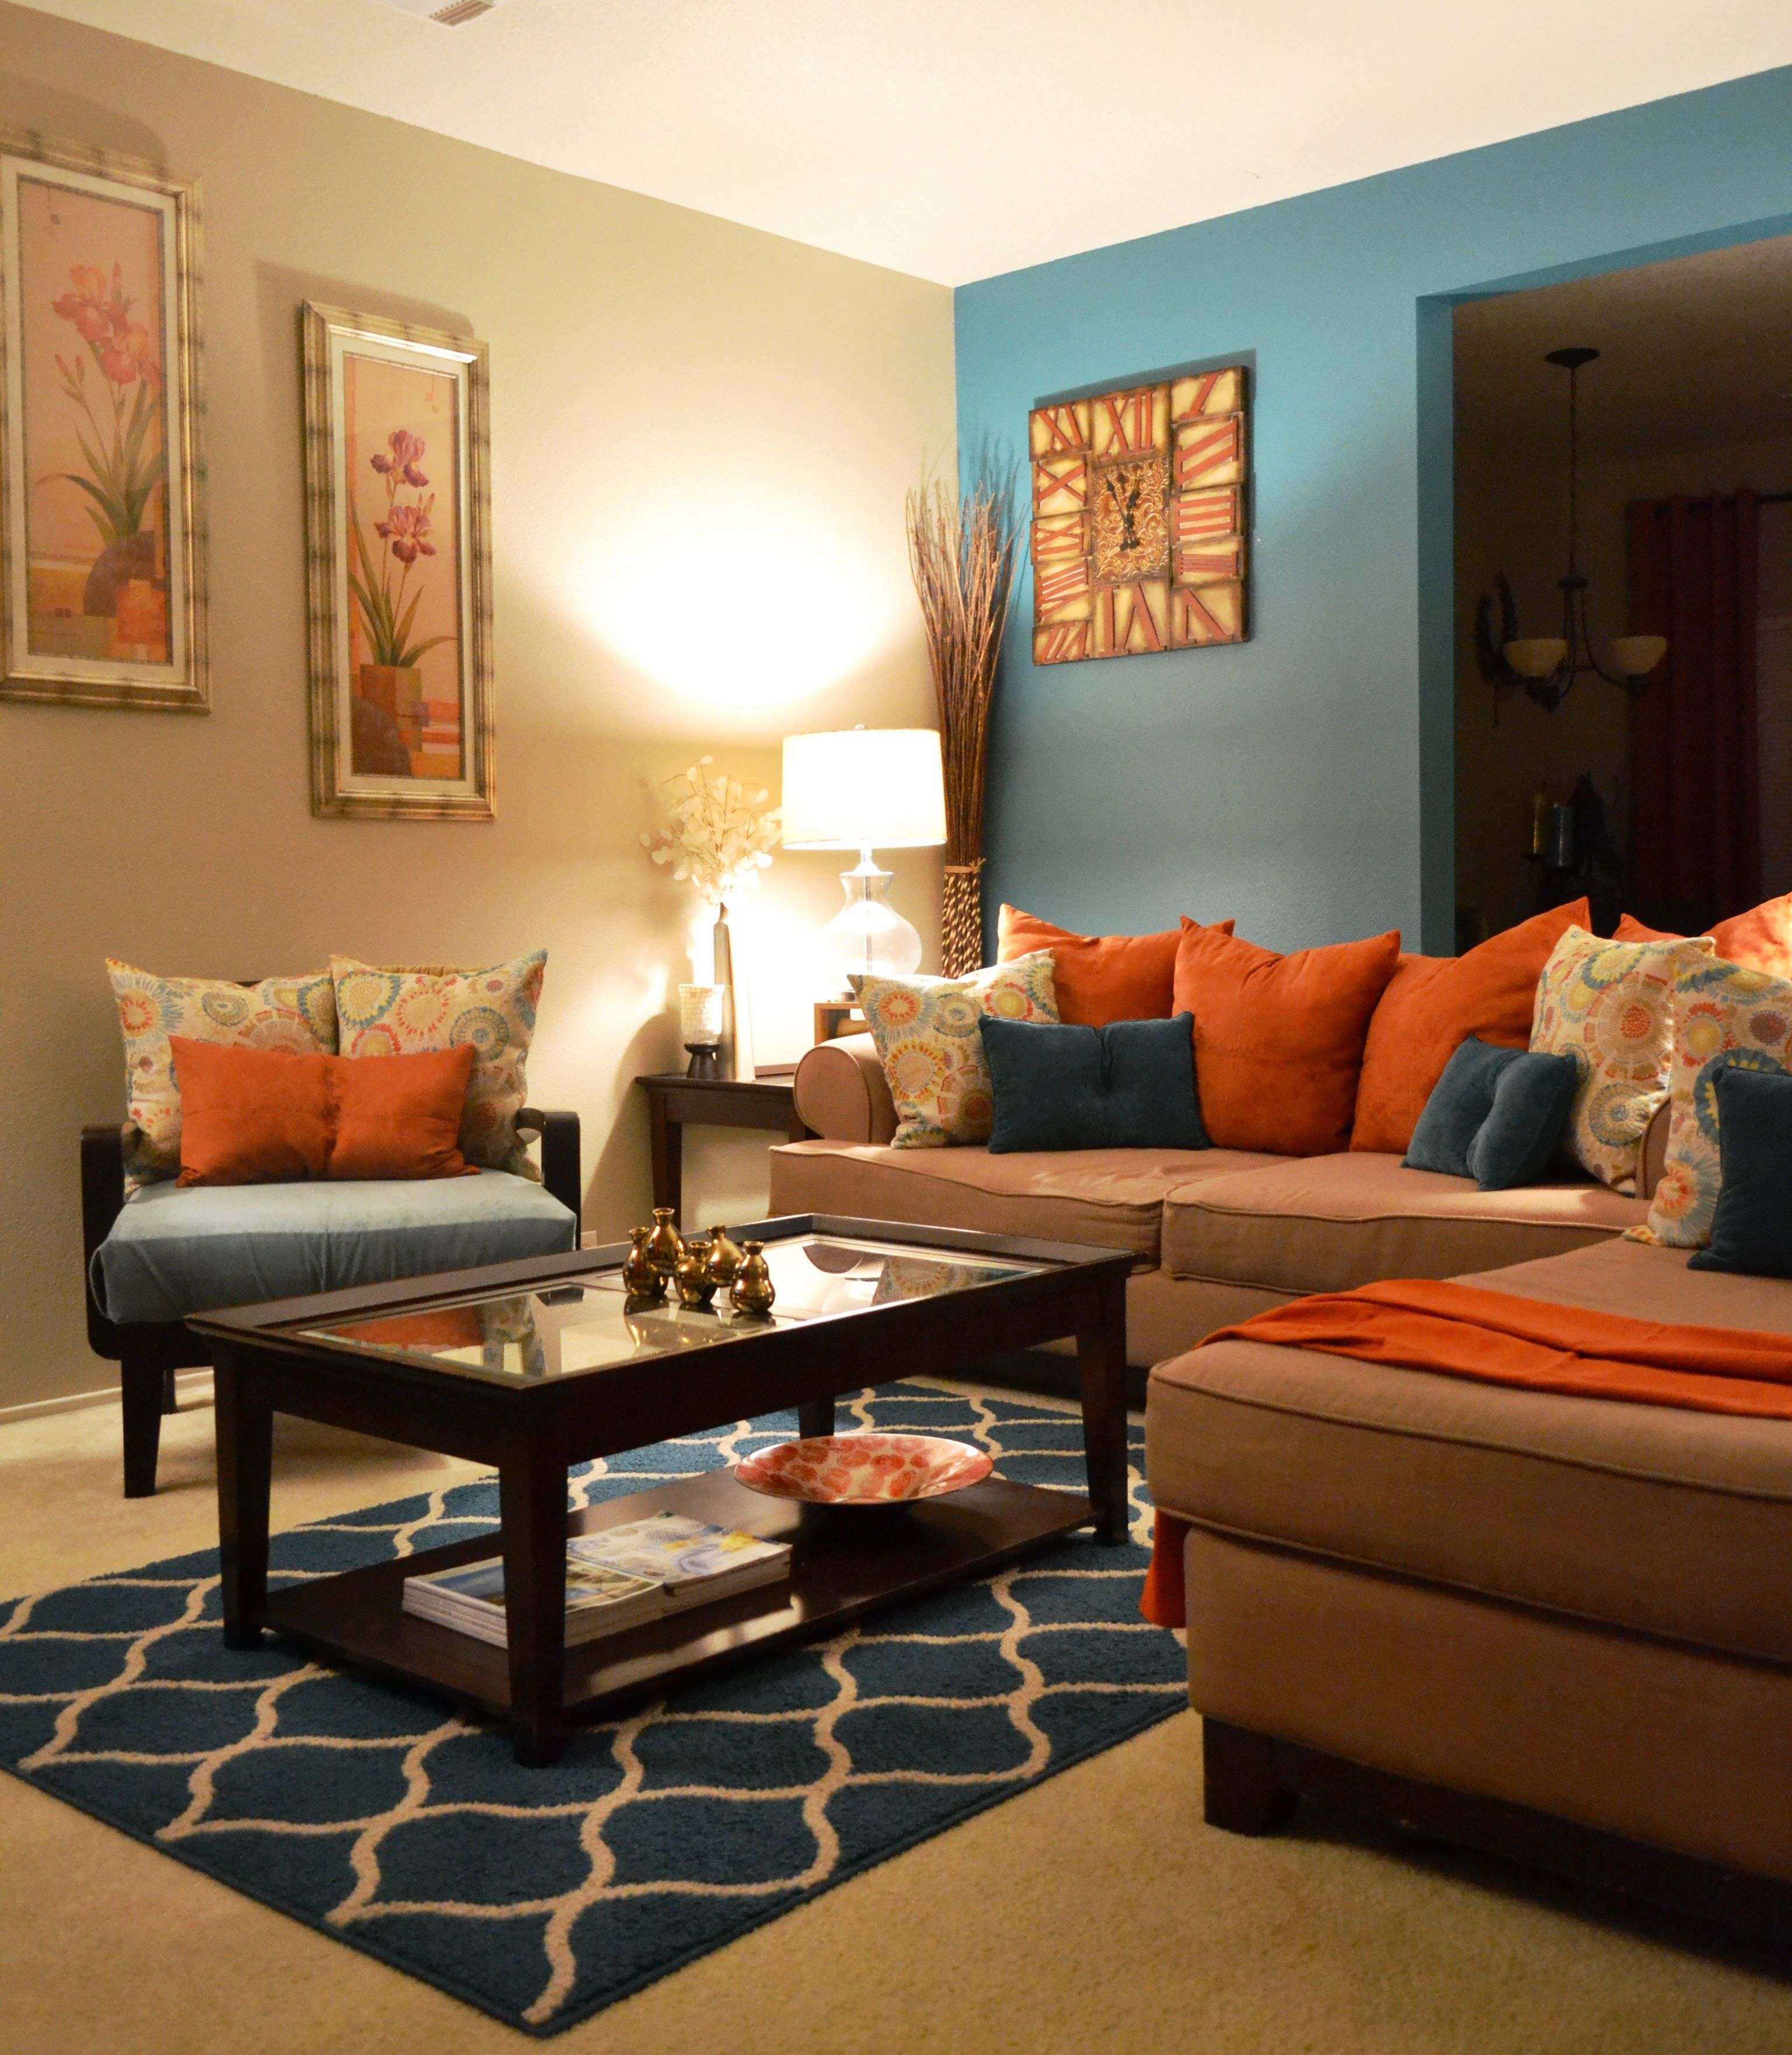 Rugs Coffee Table Pillows Teal Orange Living Room Behr Paint 730c 3 Castle Path Familyroomdesi Living Room Orange Brown Living Room Teal Living Rooms